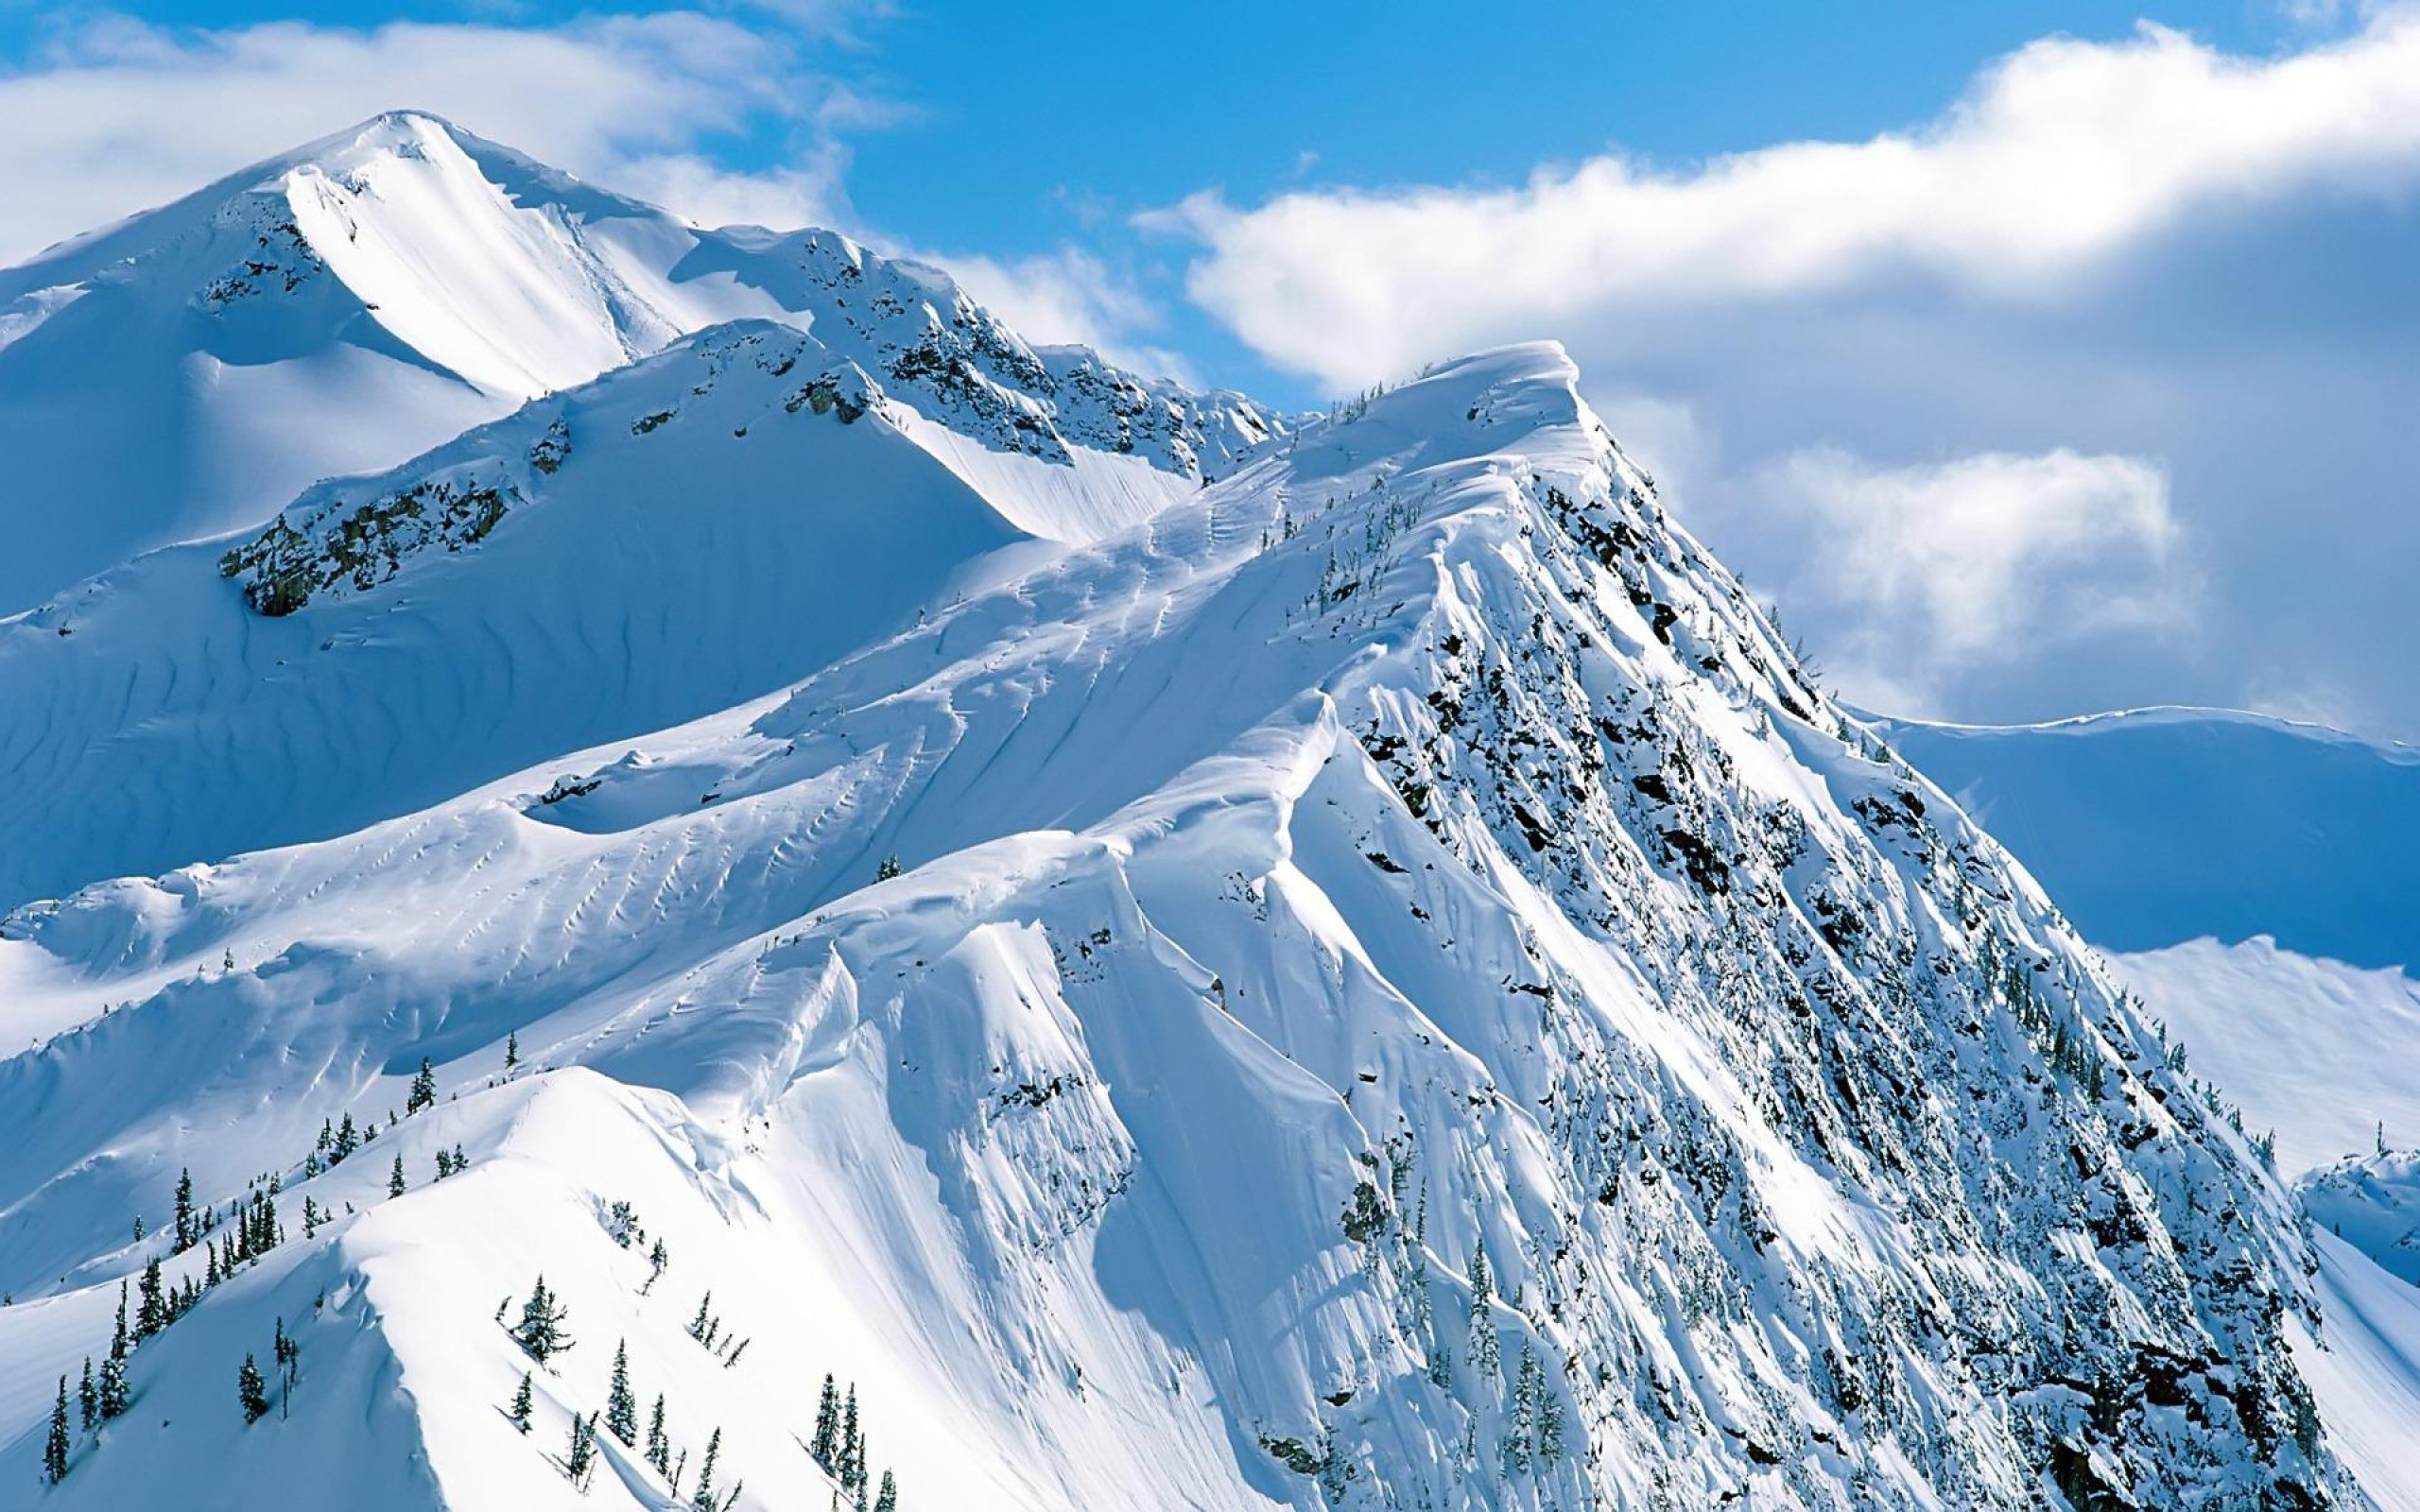 Mountain snow hd wallpapers - Hd snow mountain wallpaper ...